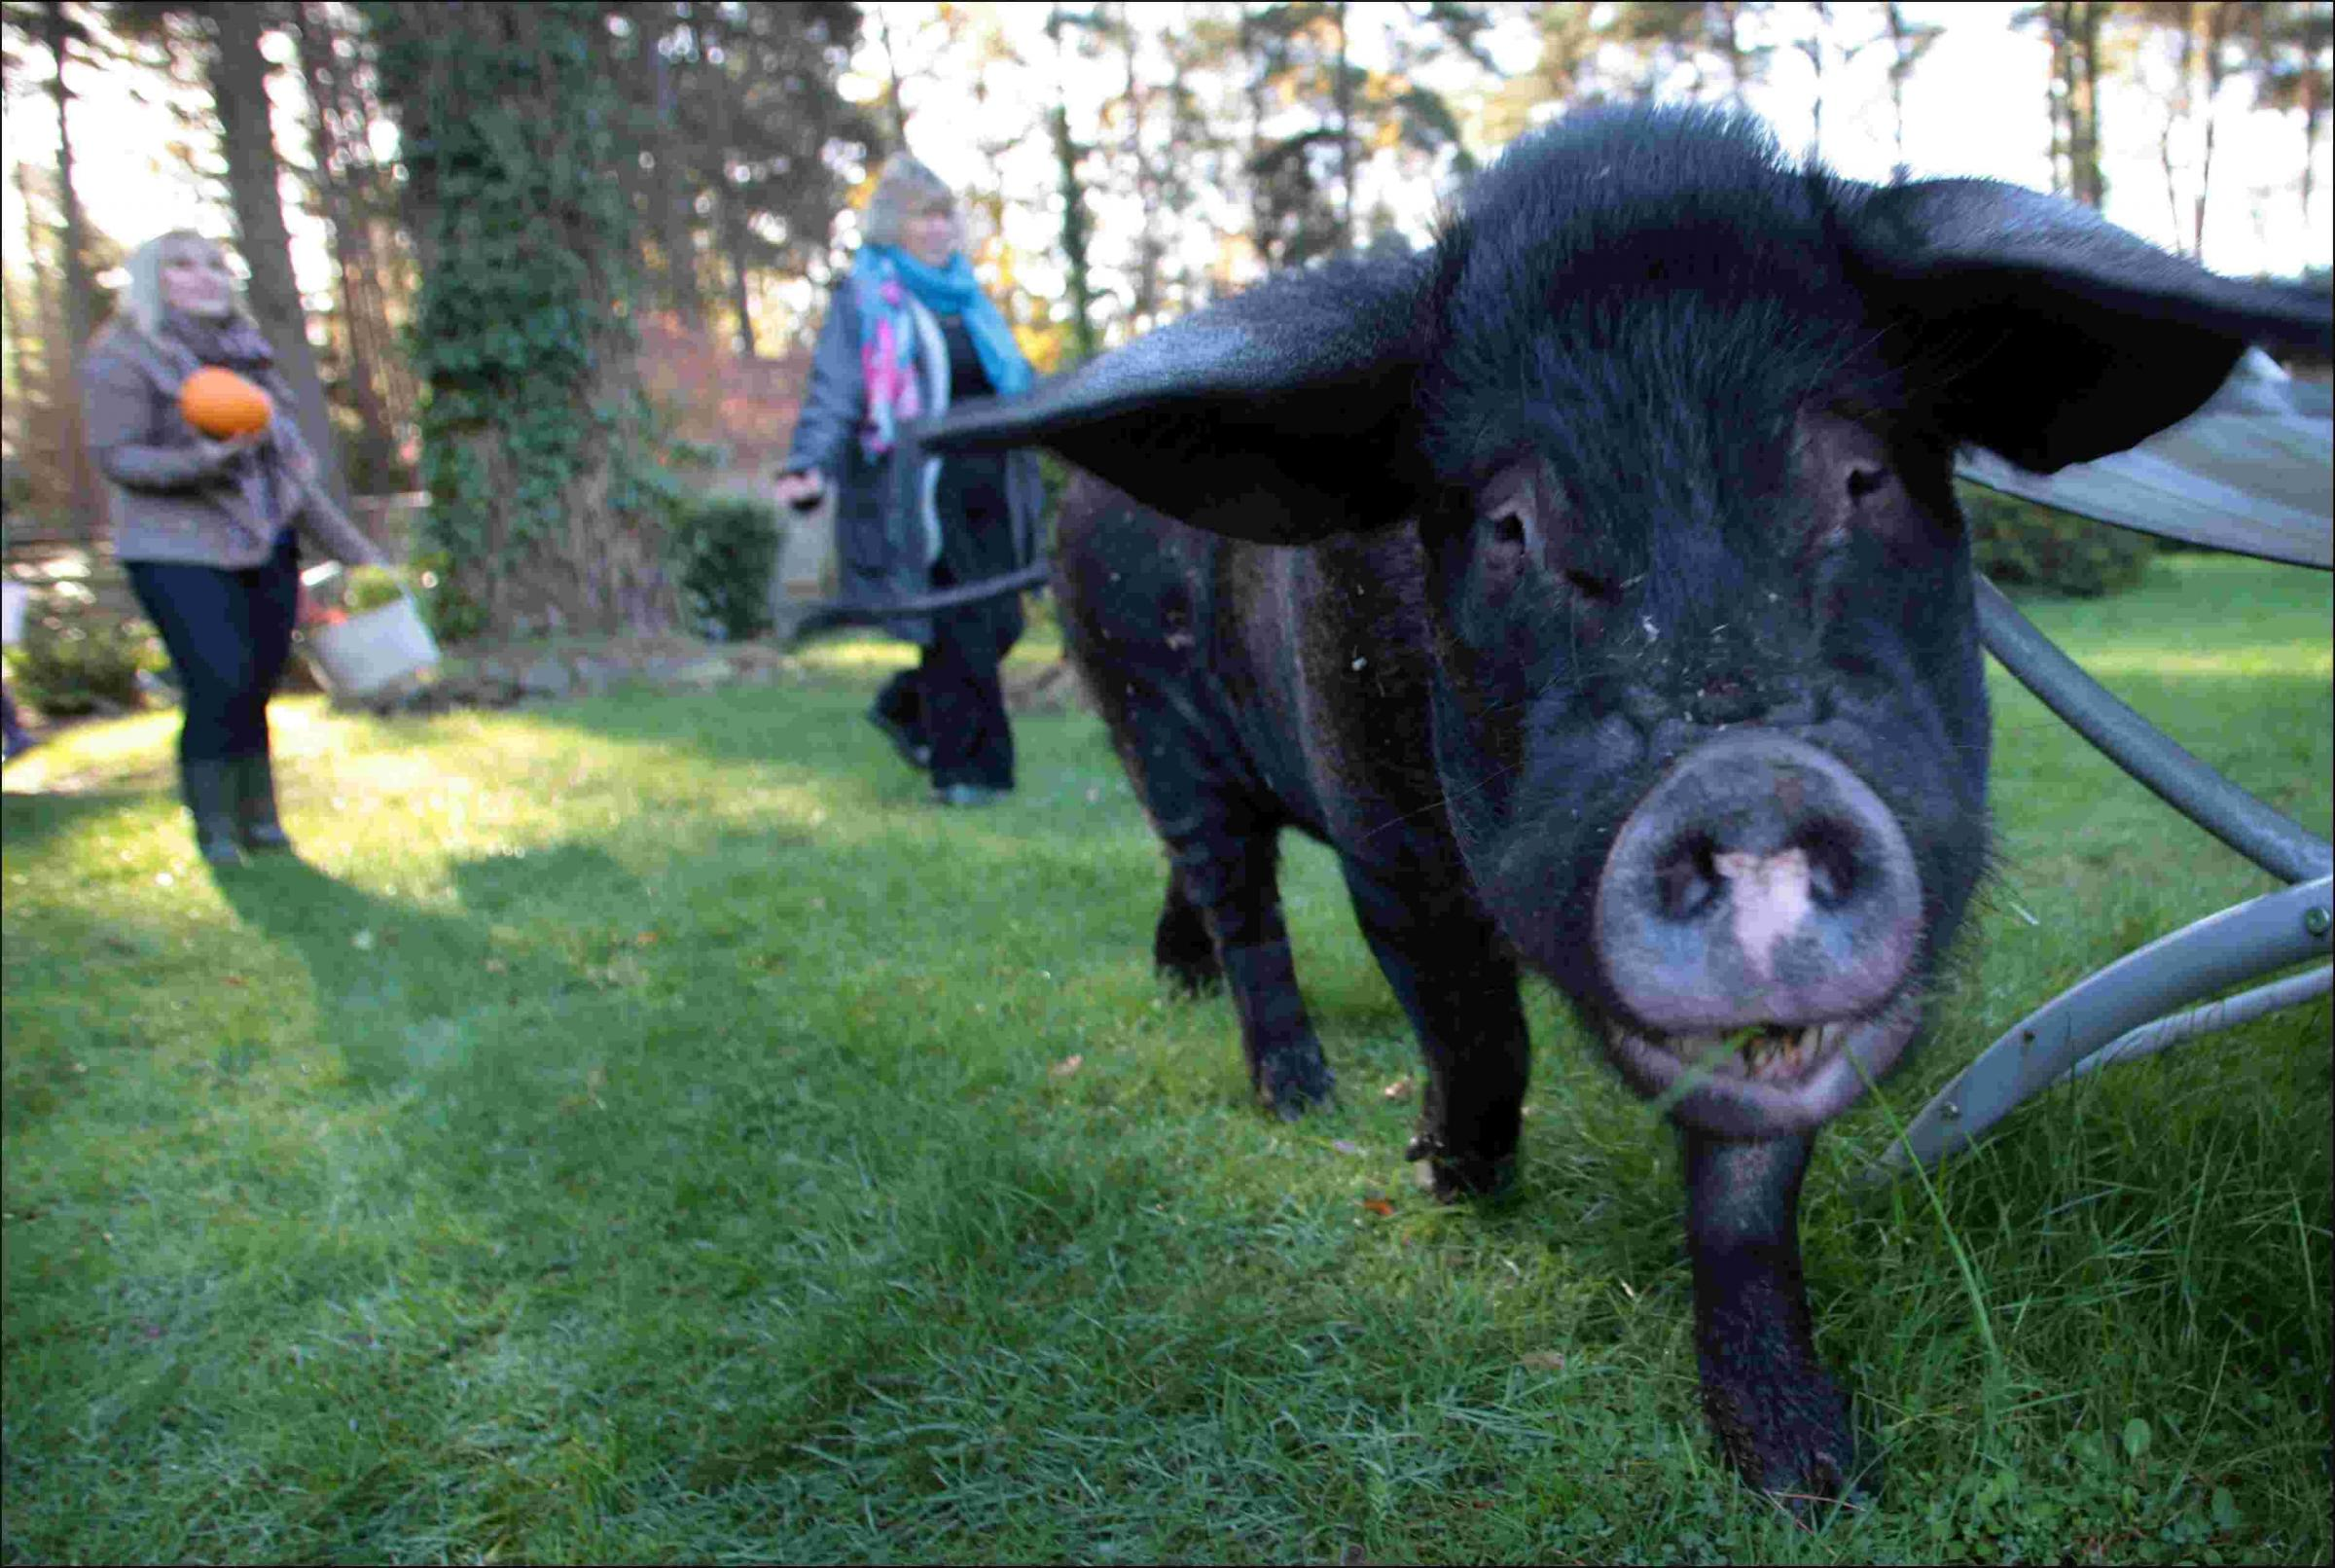 Meet Pigwig - the so-called micro pig who grew up to be a 20 stone porker